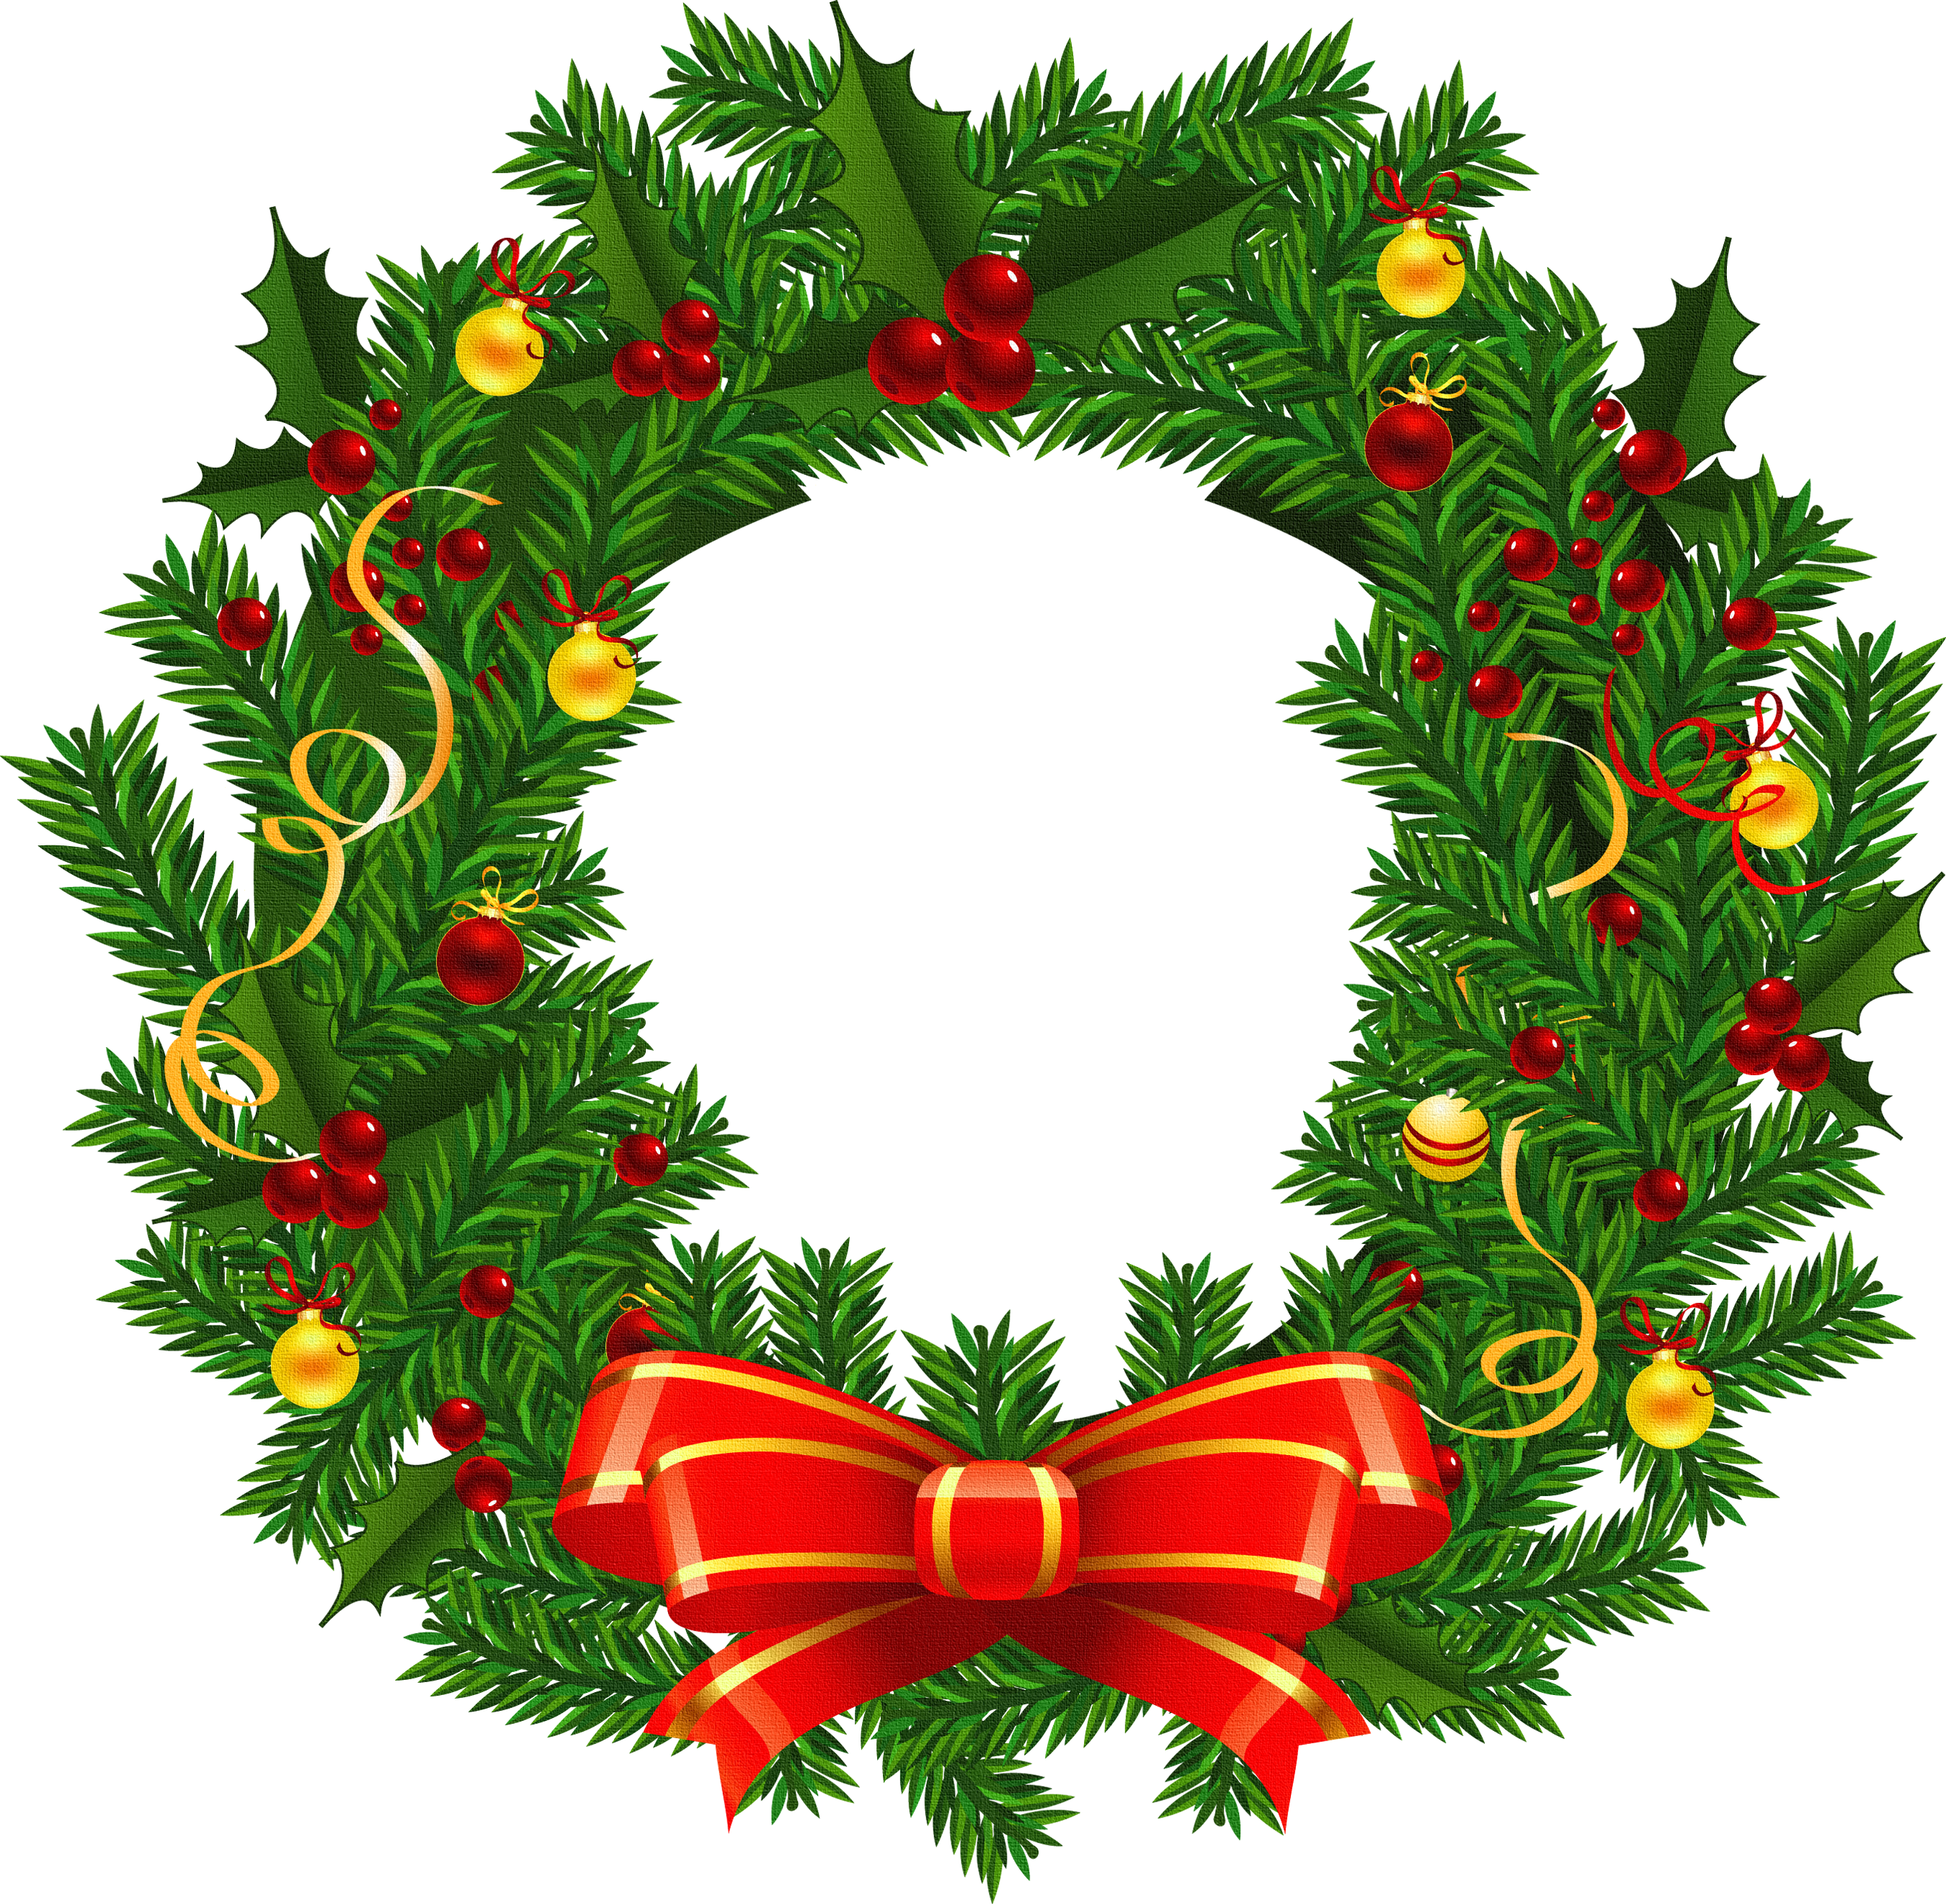 Christmas wreath png. Large transparent picture gallery